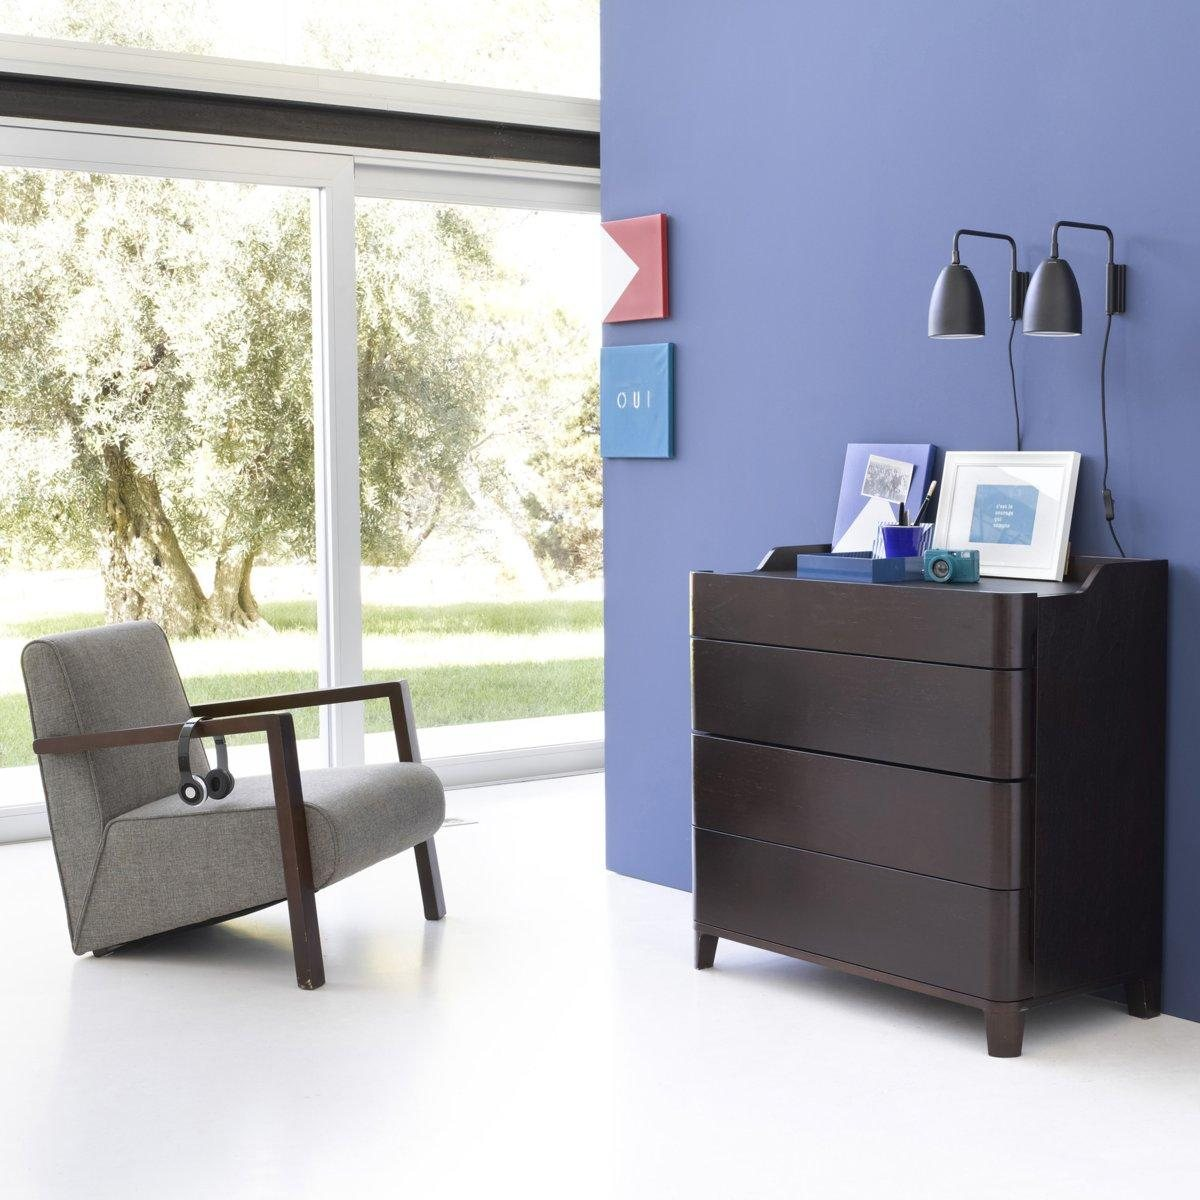 Bureau Junius Design E. Gallina Commode Junius Design E Gallina Am Pm Commode Am Pm